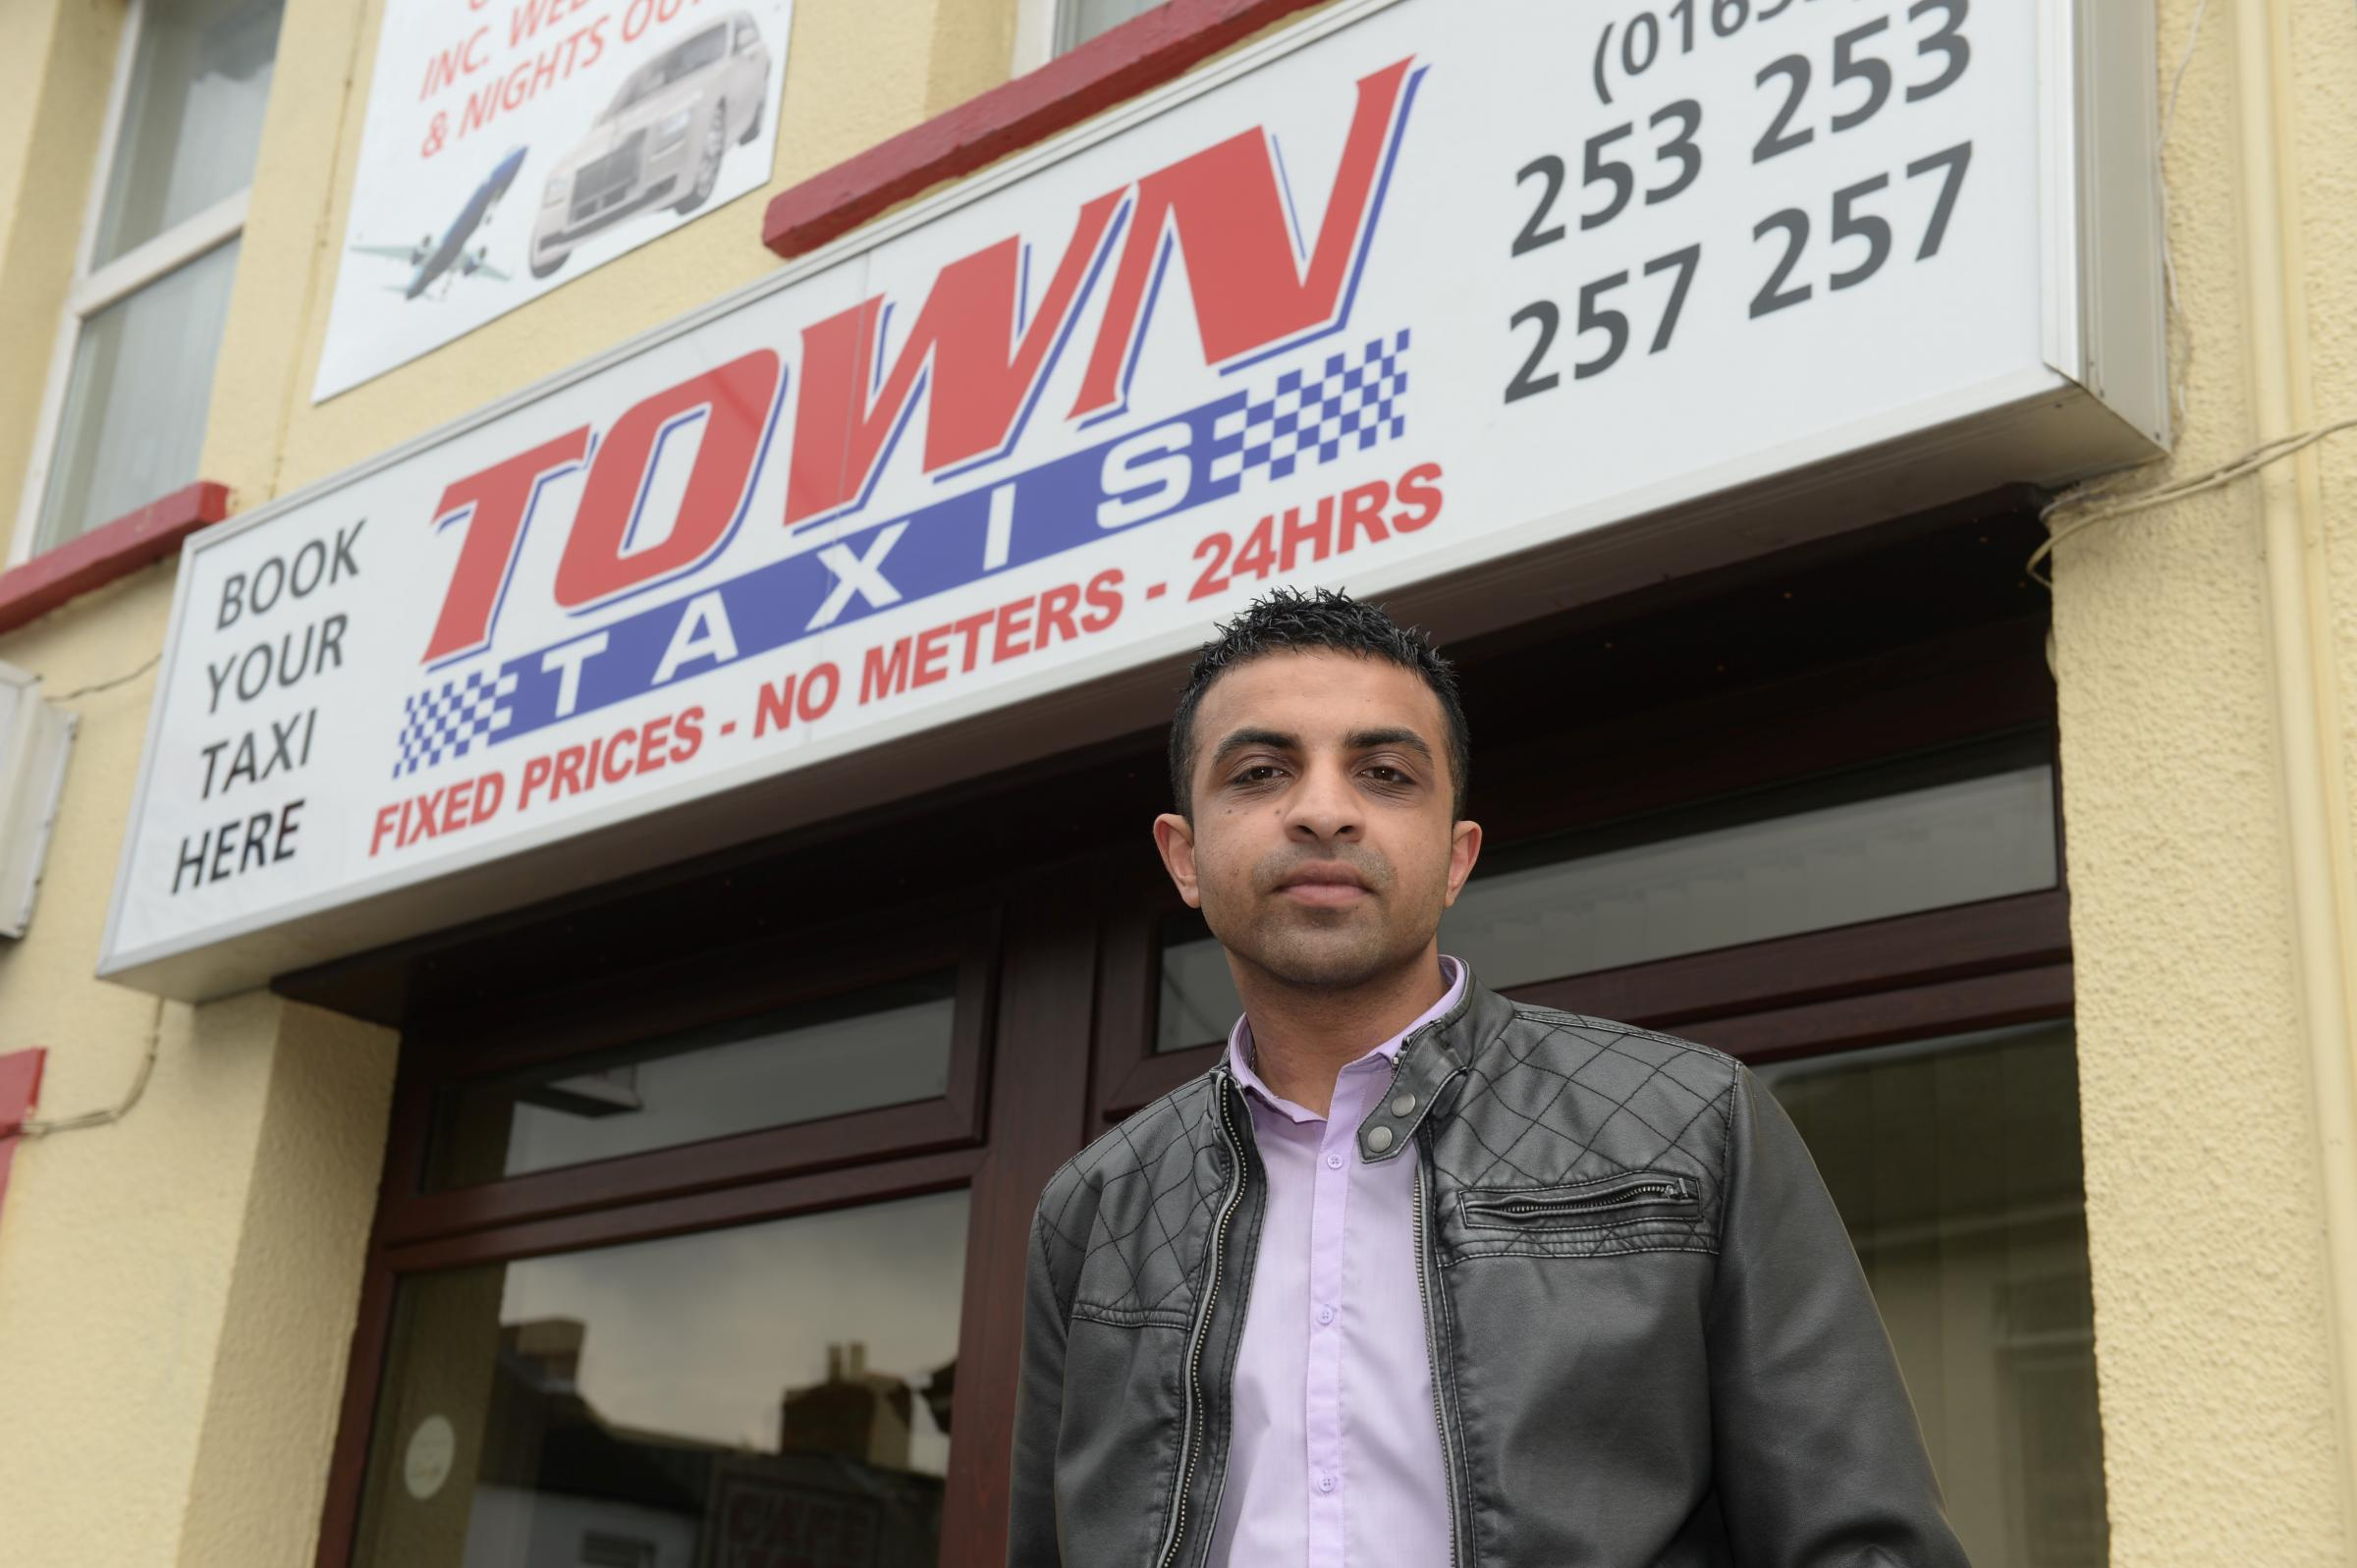 Newport entrepreneur takes over city taxi firm